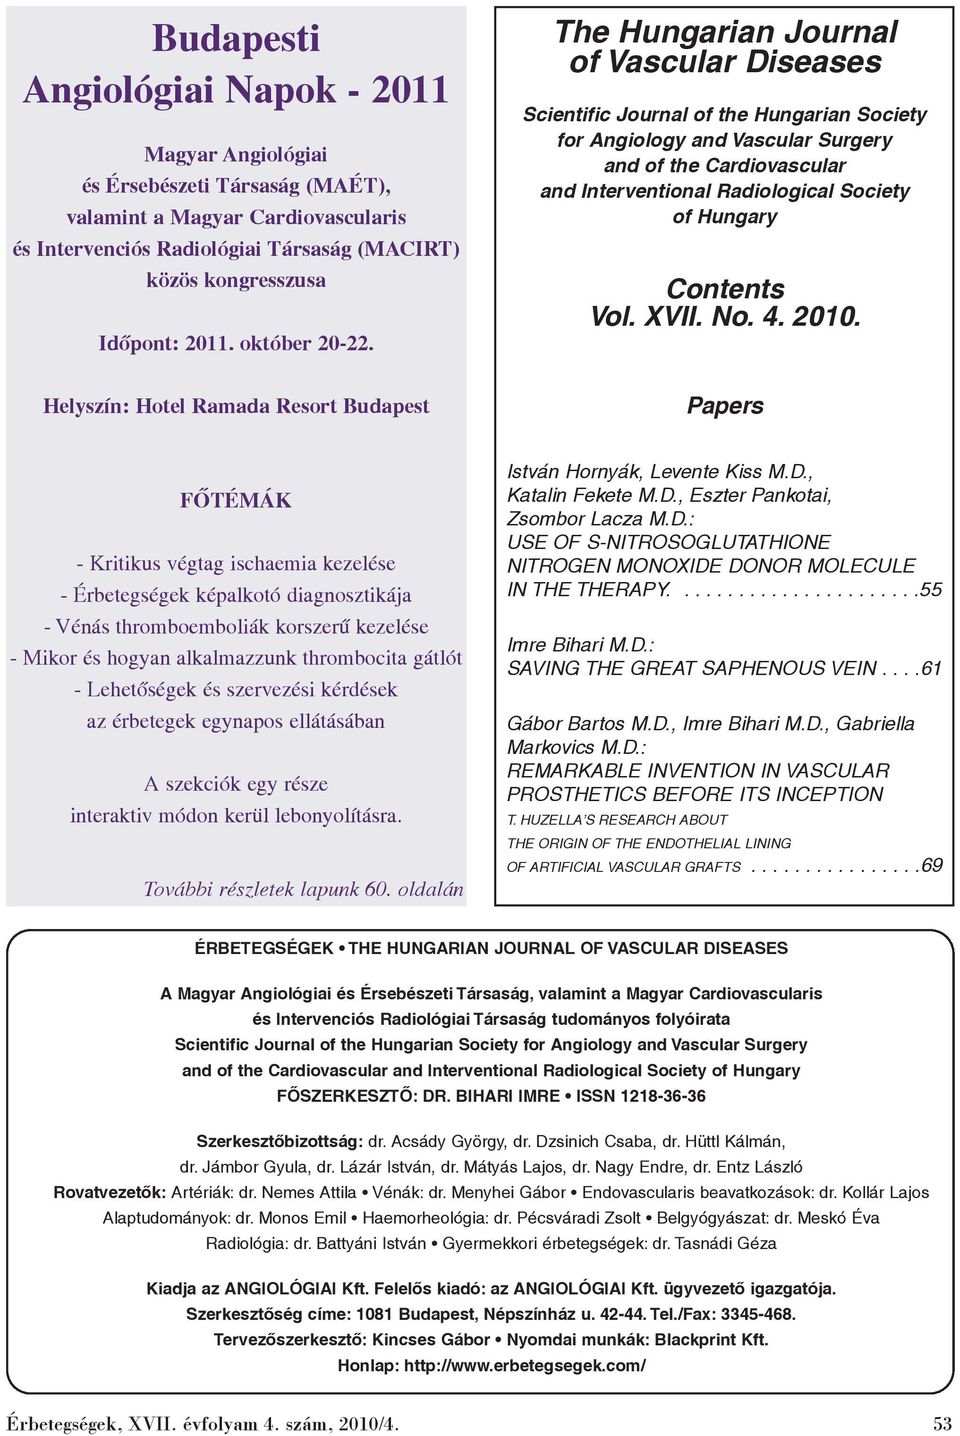 The Hungarian Journal of Vascular Diseases Scientific Journal of the Hungarian Society for Angiology and Vascular Surgery and of the Cardiovascular and Interventional Radiological Society of Hungary